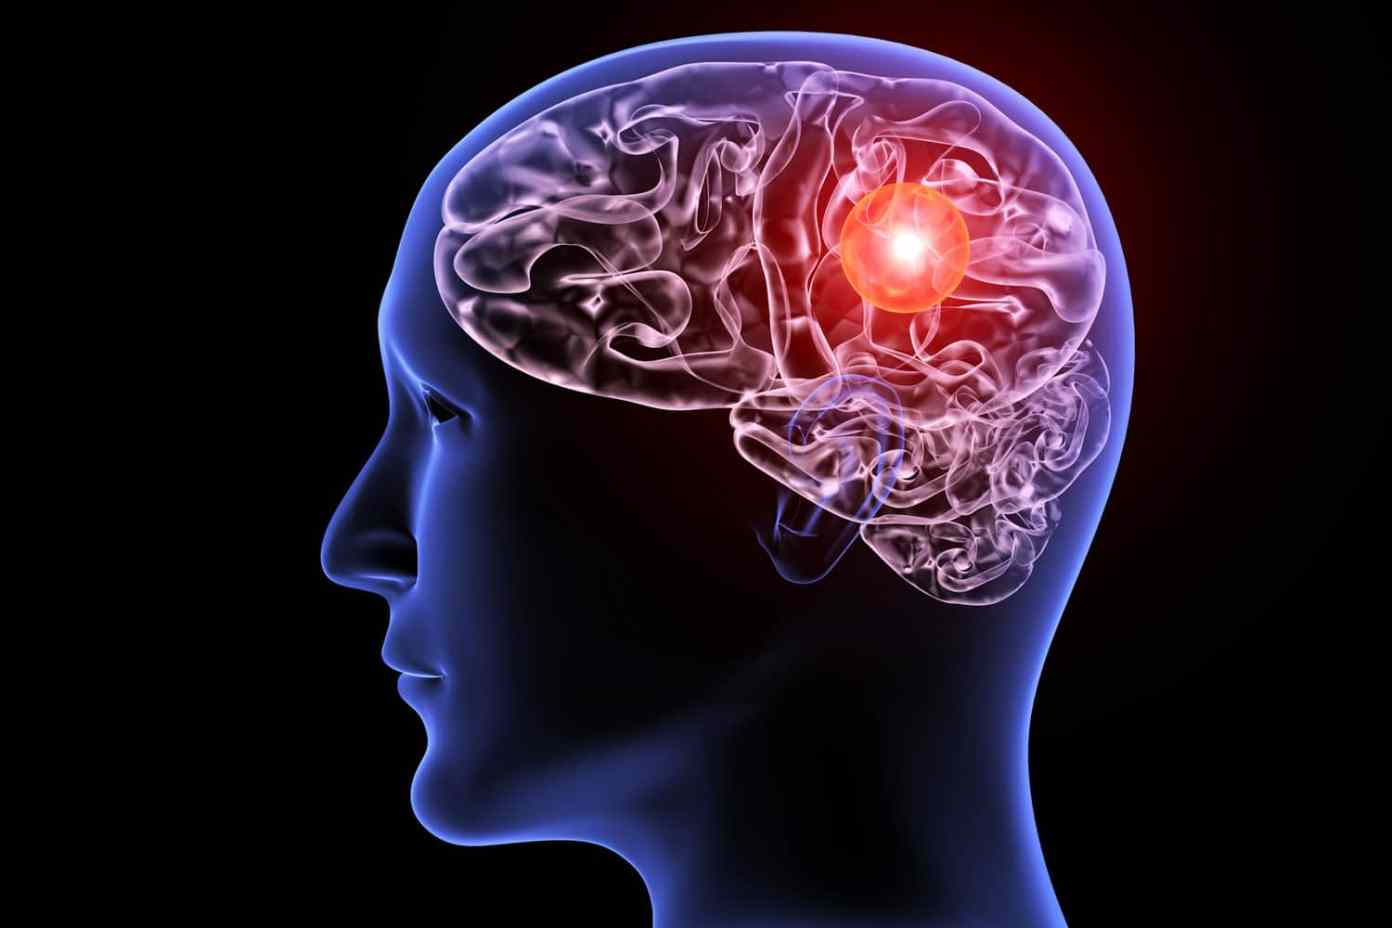 New artificial intelligence tool helps diagnose brain aneurysms